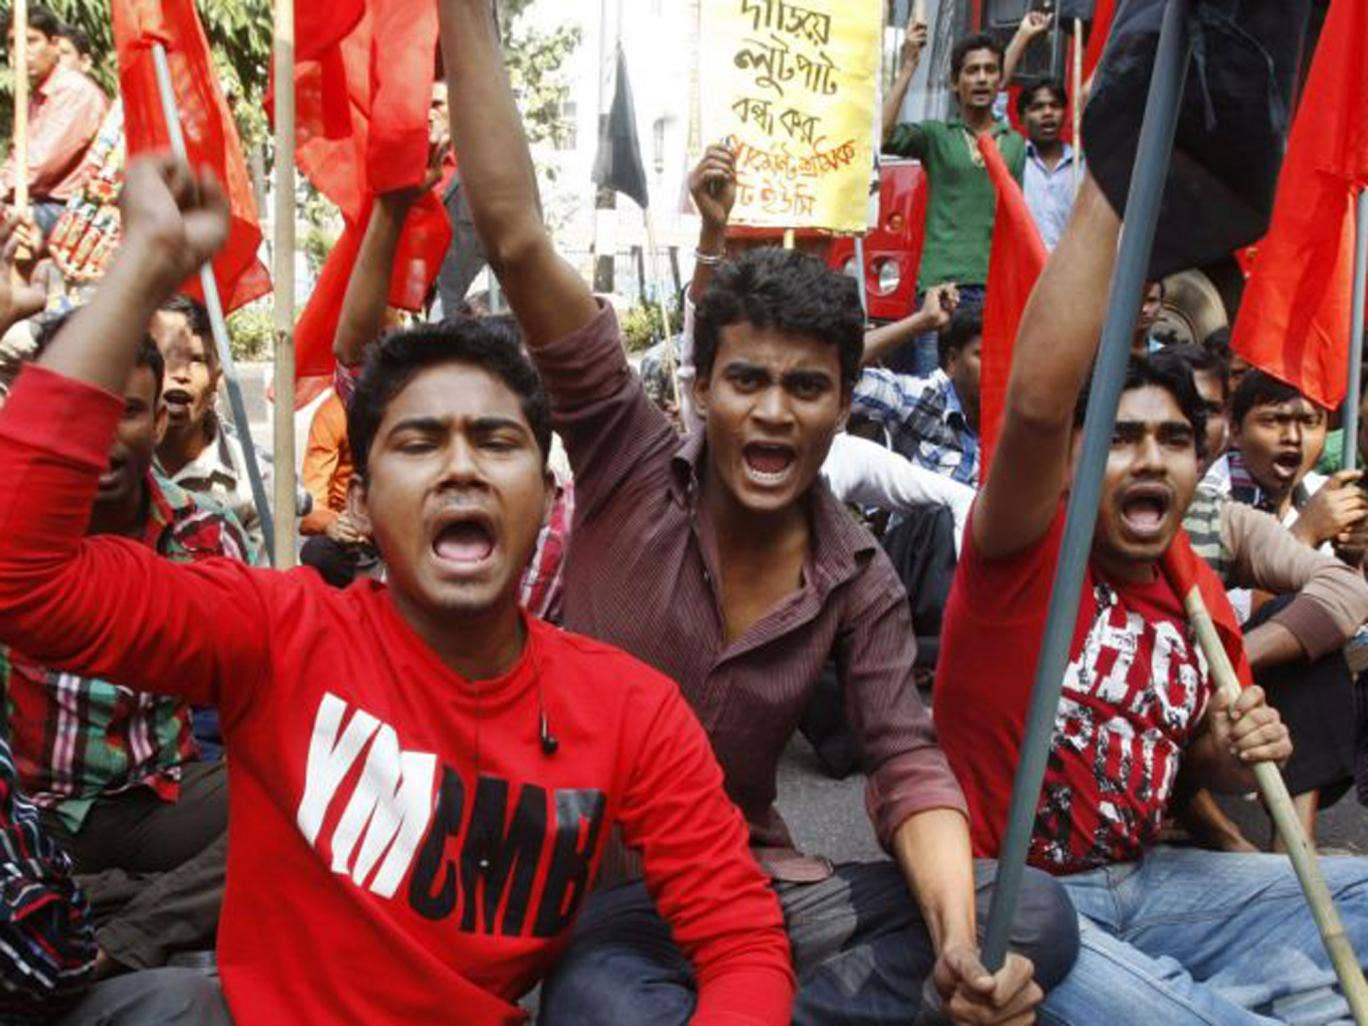 Bangladeshi garment workers from the Tazreen factory demand compensation for their lost salaries